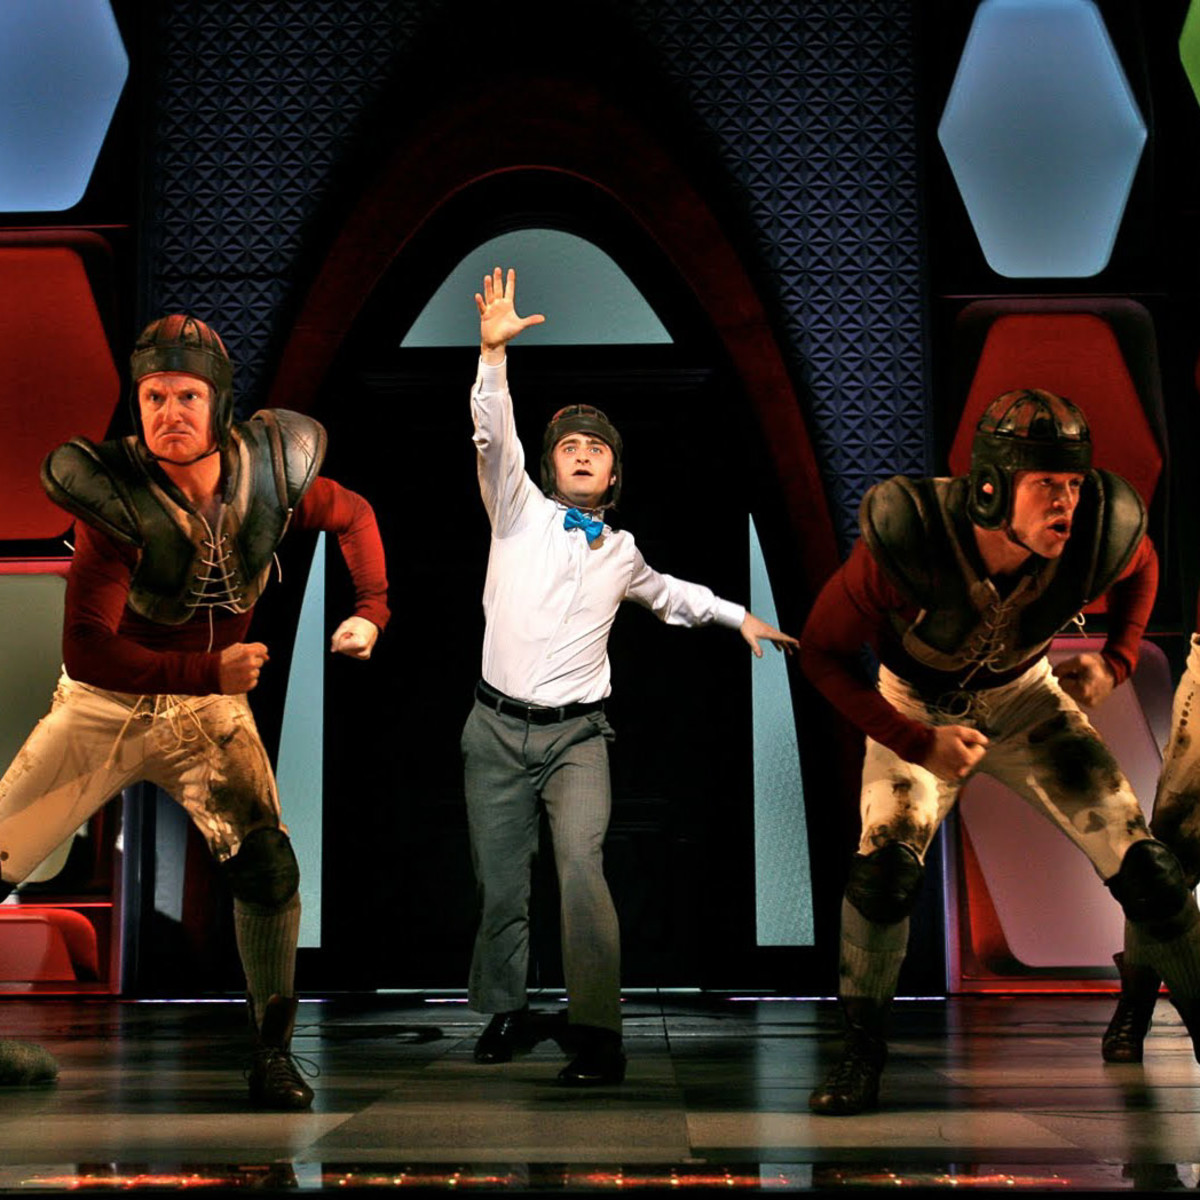 News_Tony Awards 2011_How to Succeed in Business